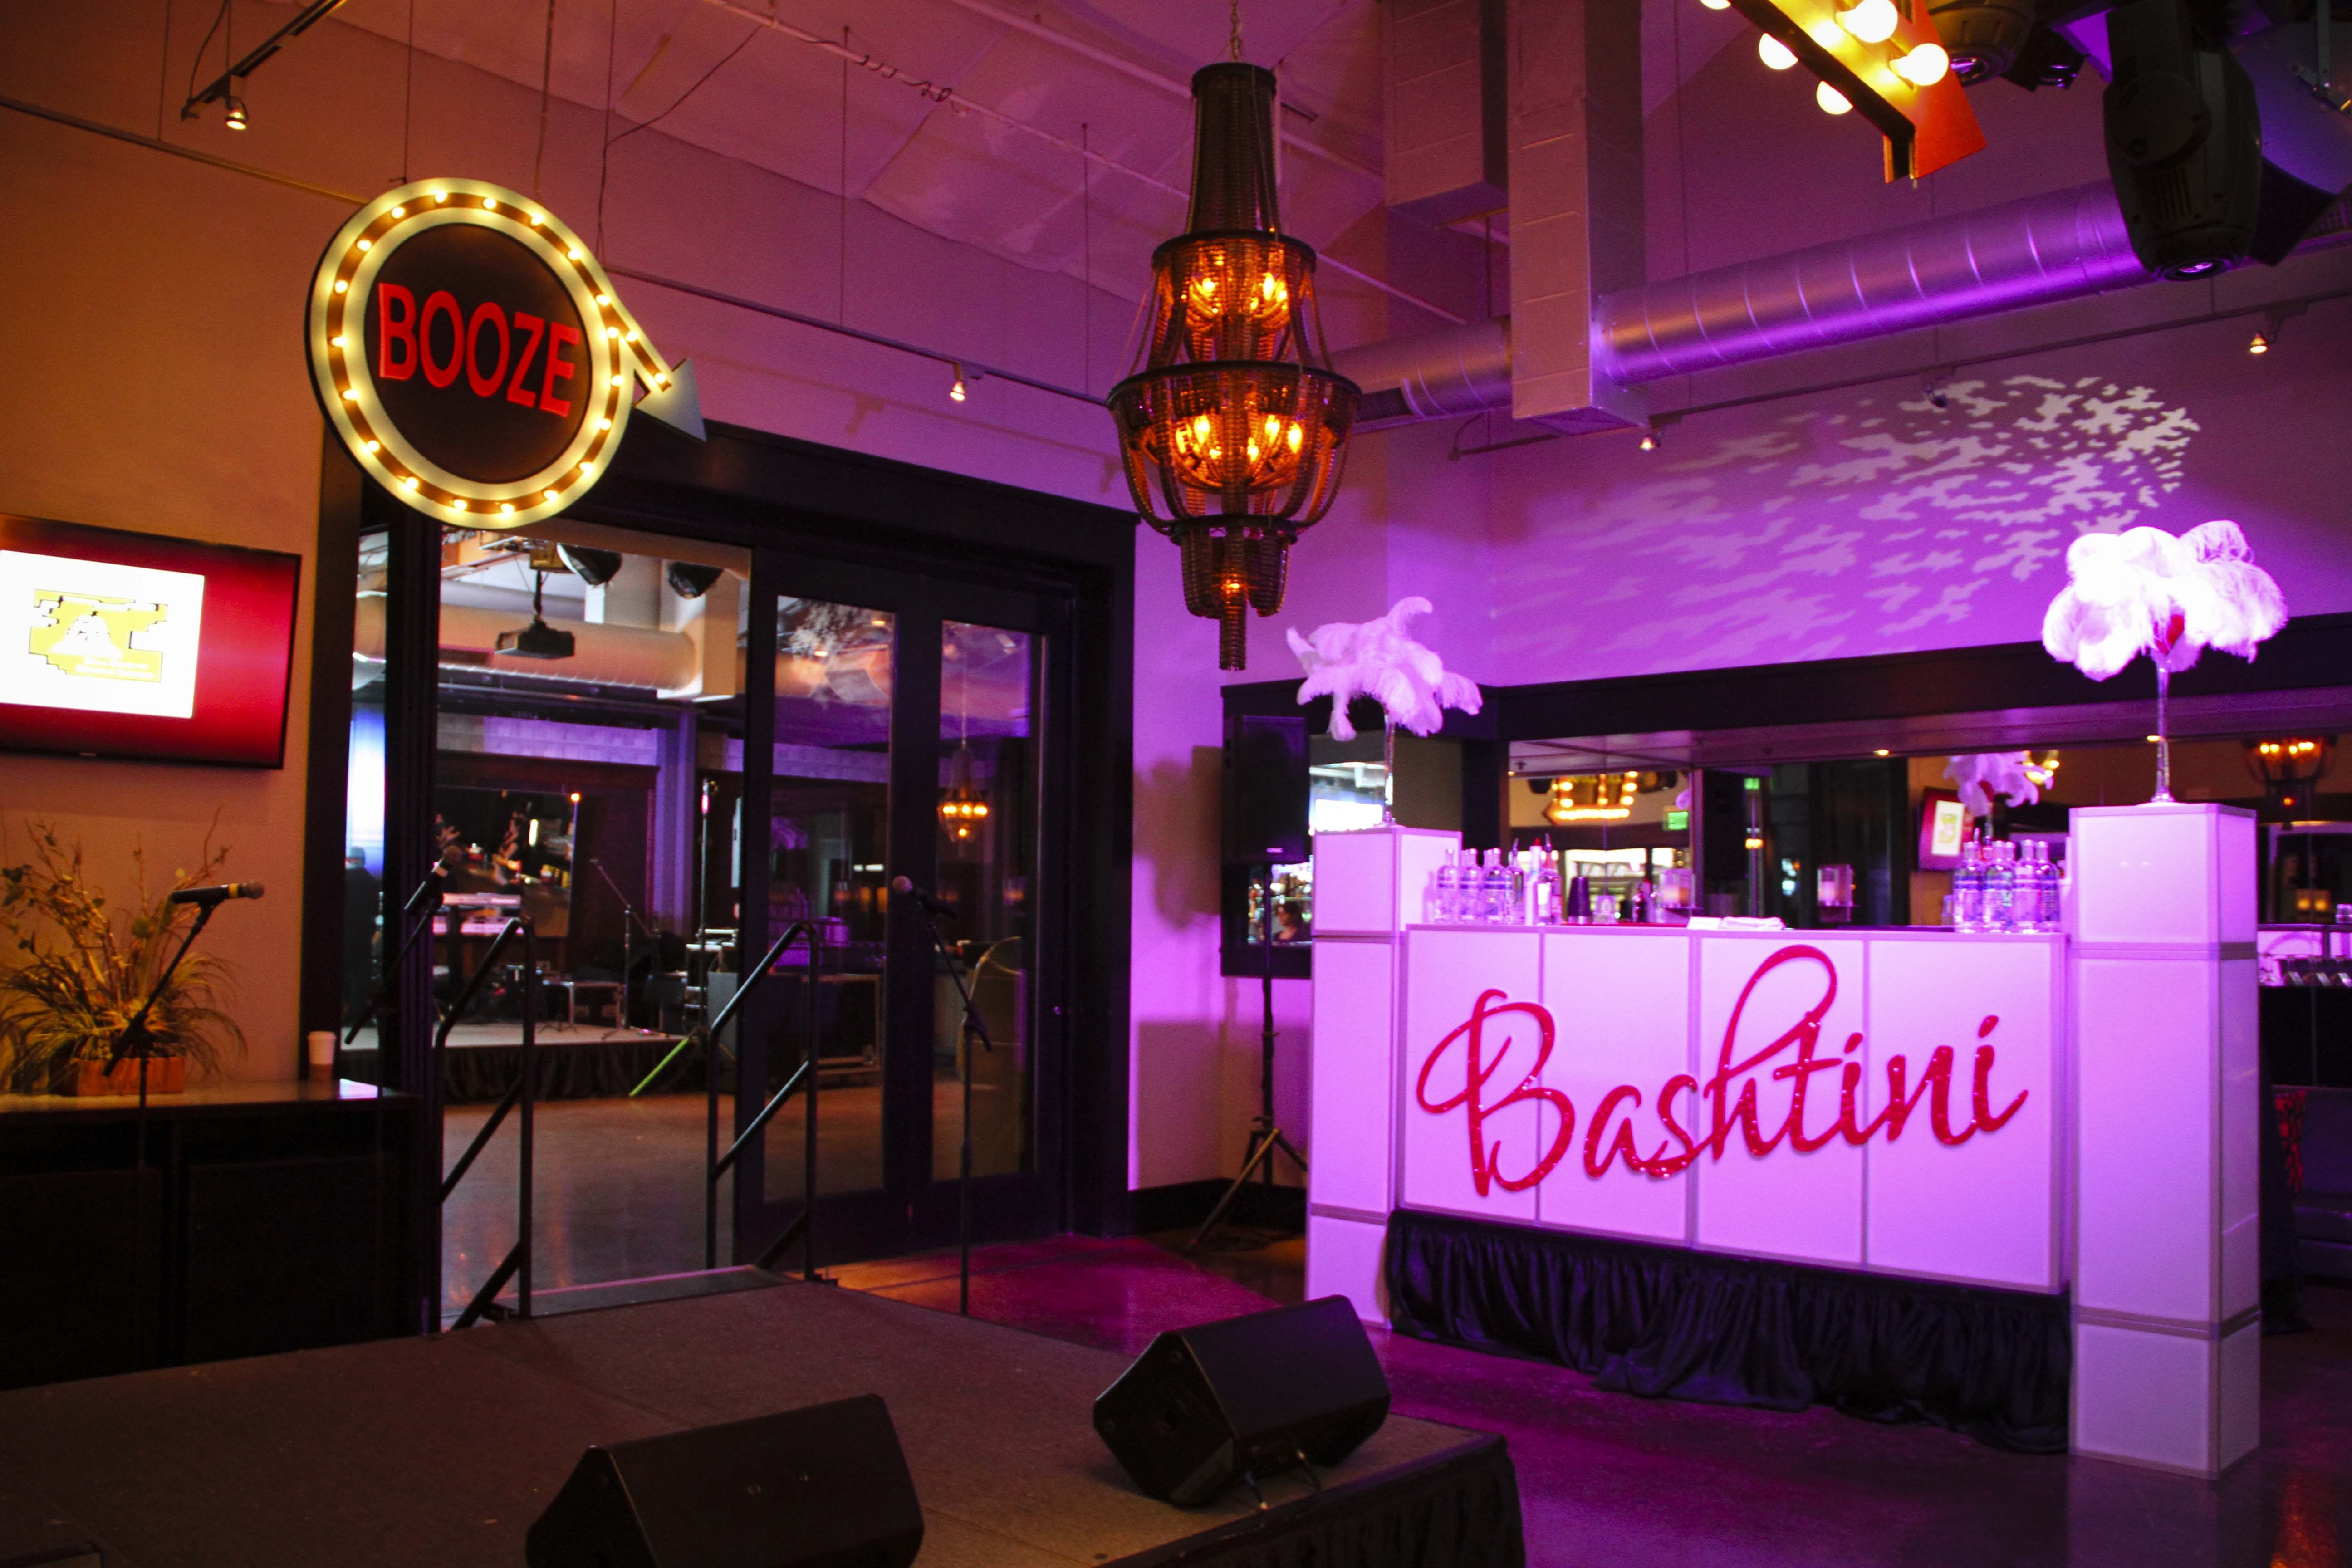 """Another """"Bashtini"""" pic for your viewing pleasure. Event"""